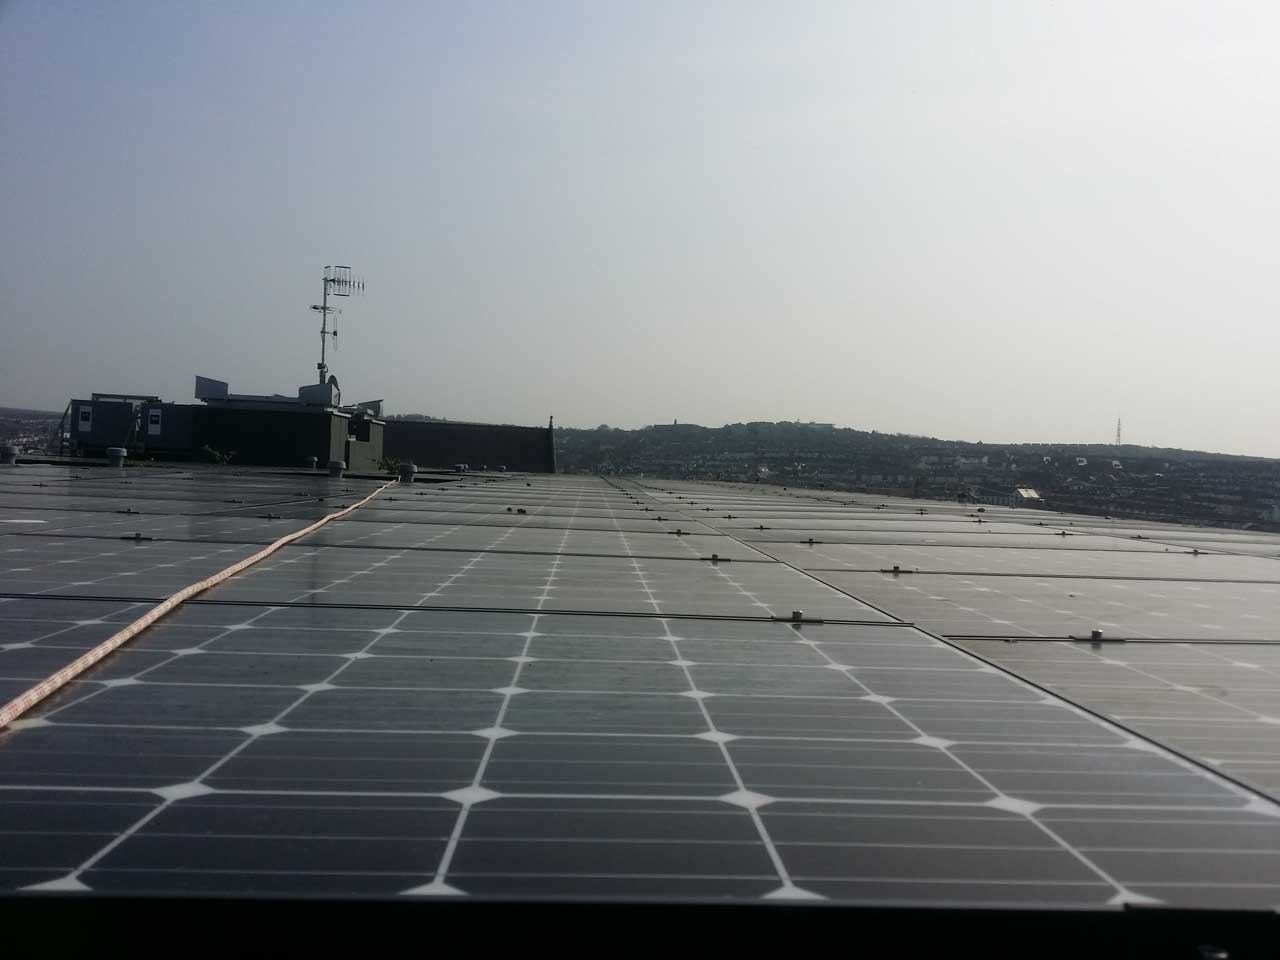 rope access teams install solar energy panels to a roof top in Brighton